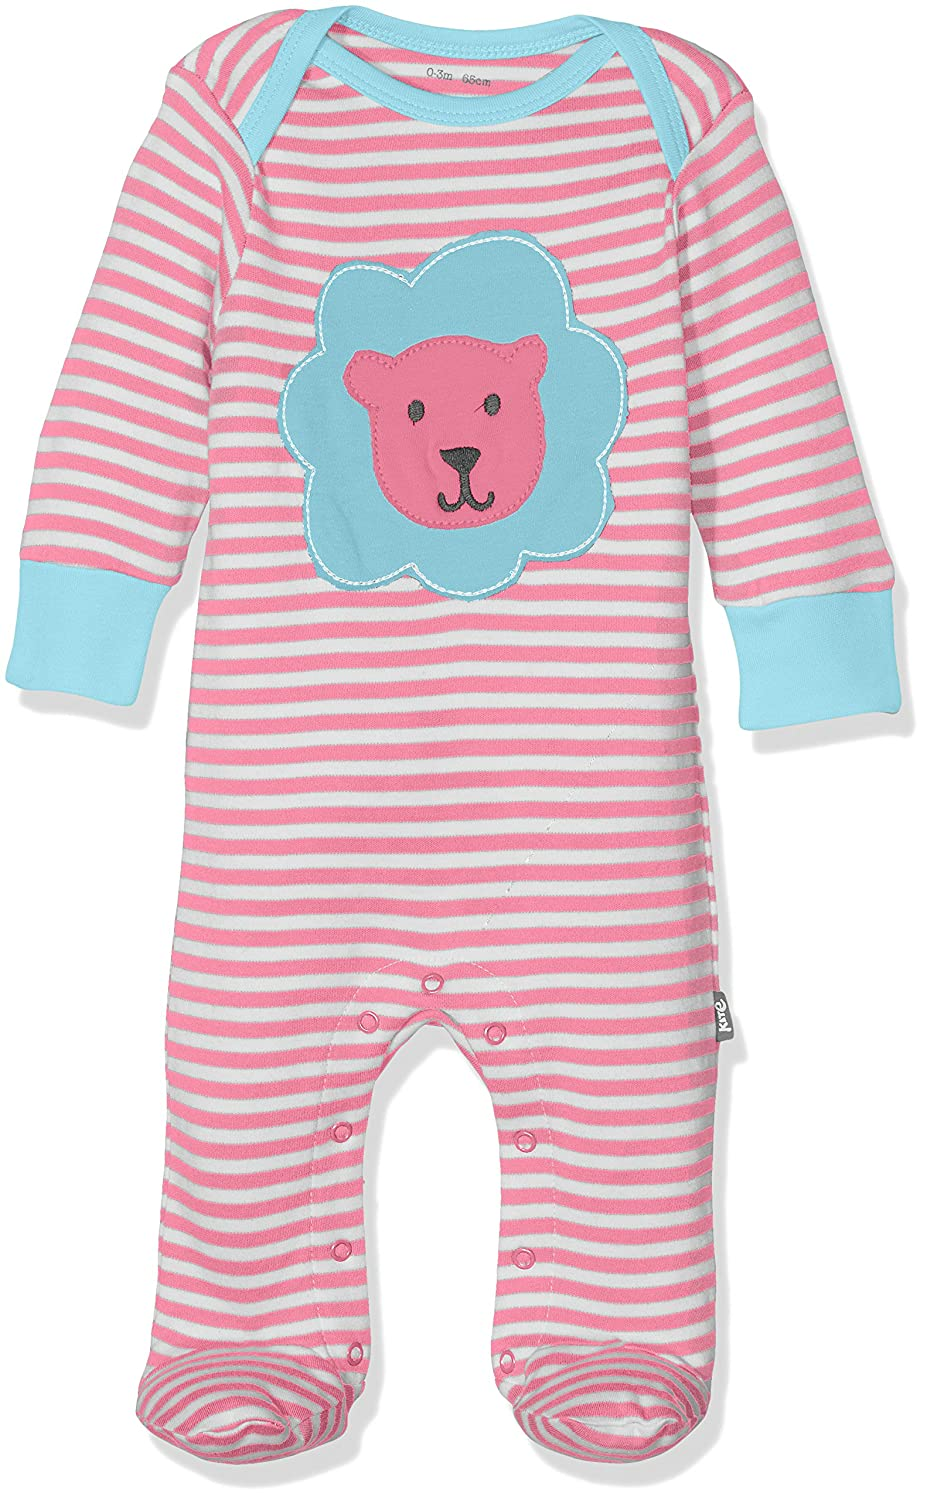 Kite Baby Girls' Lion Sleepsuit BG507